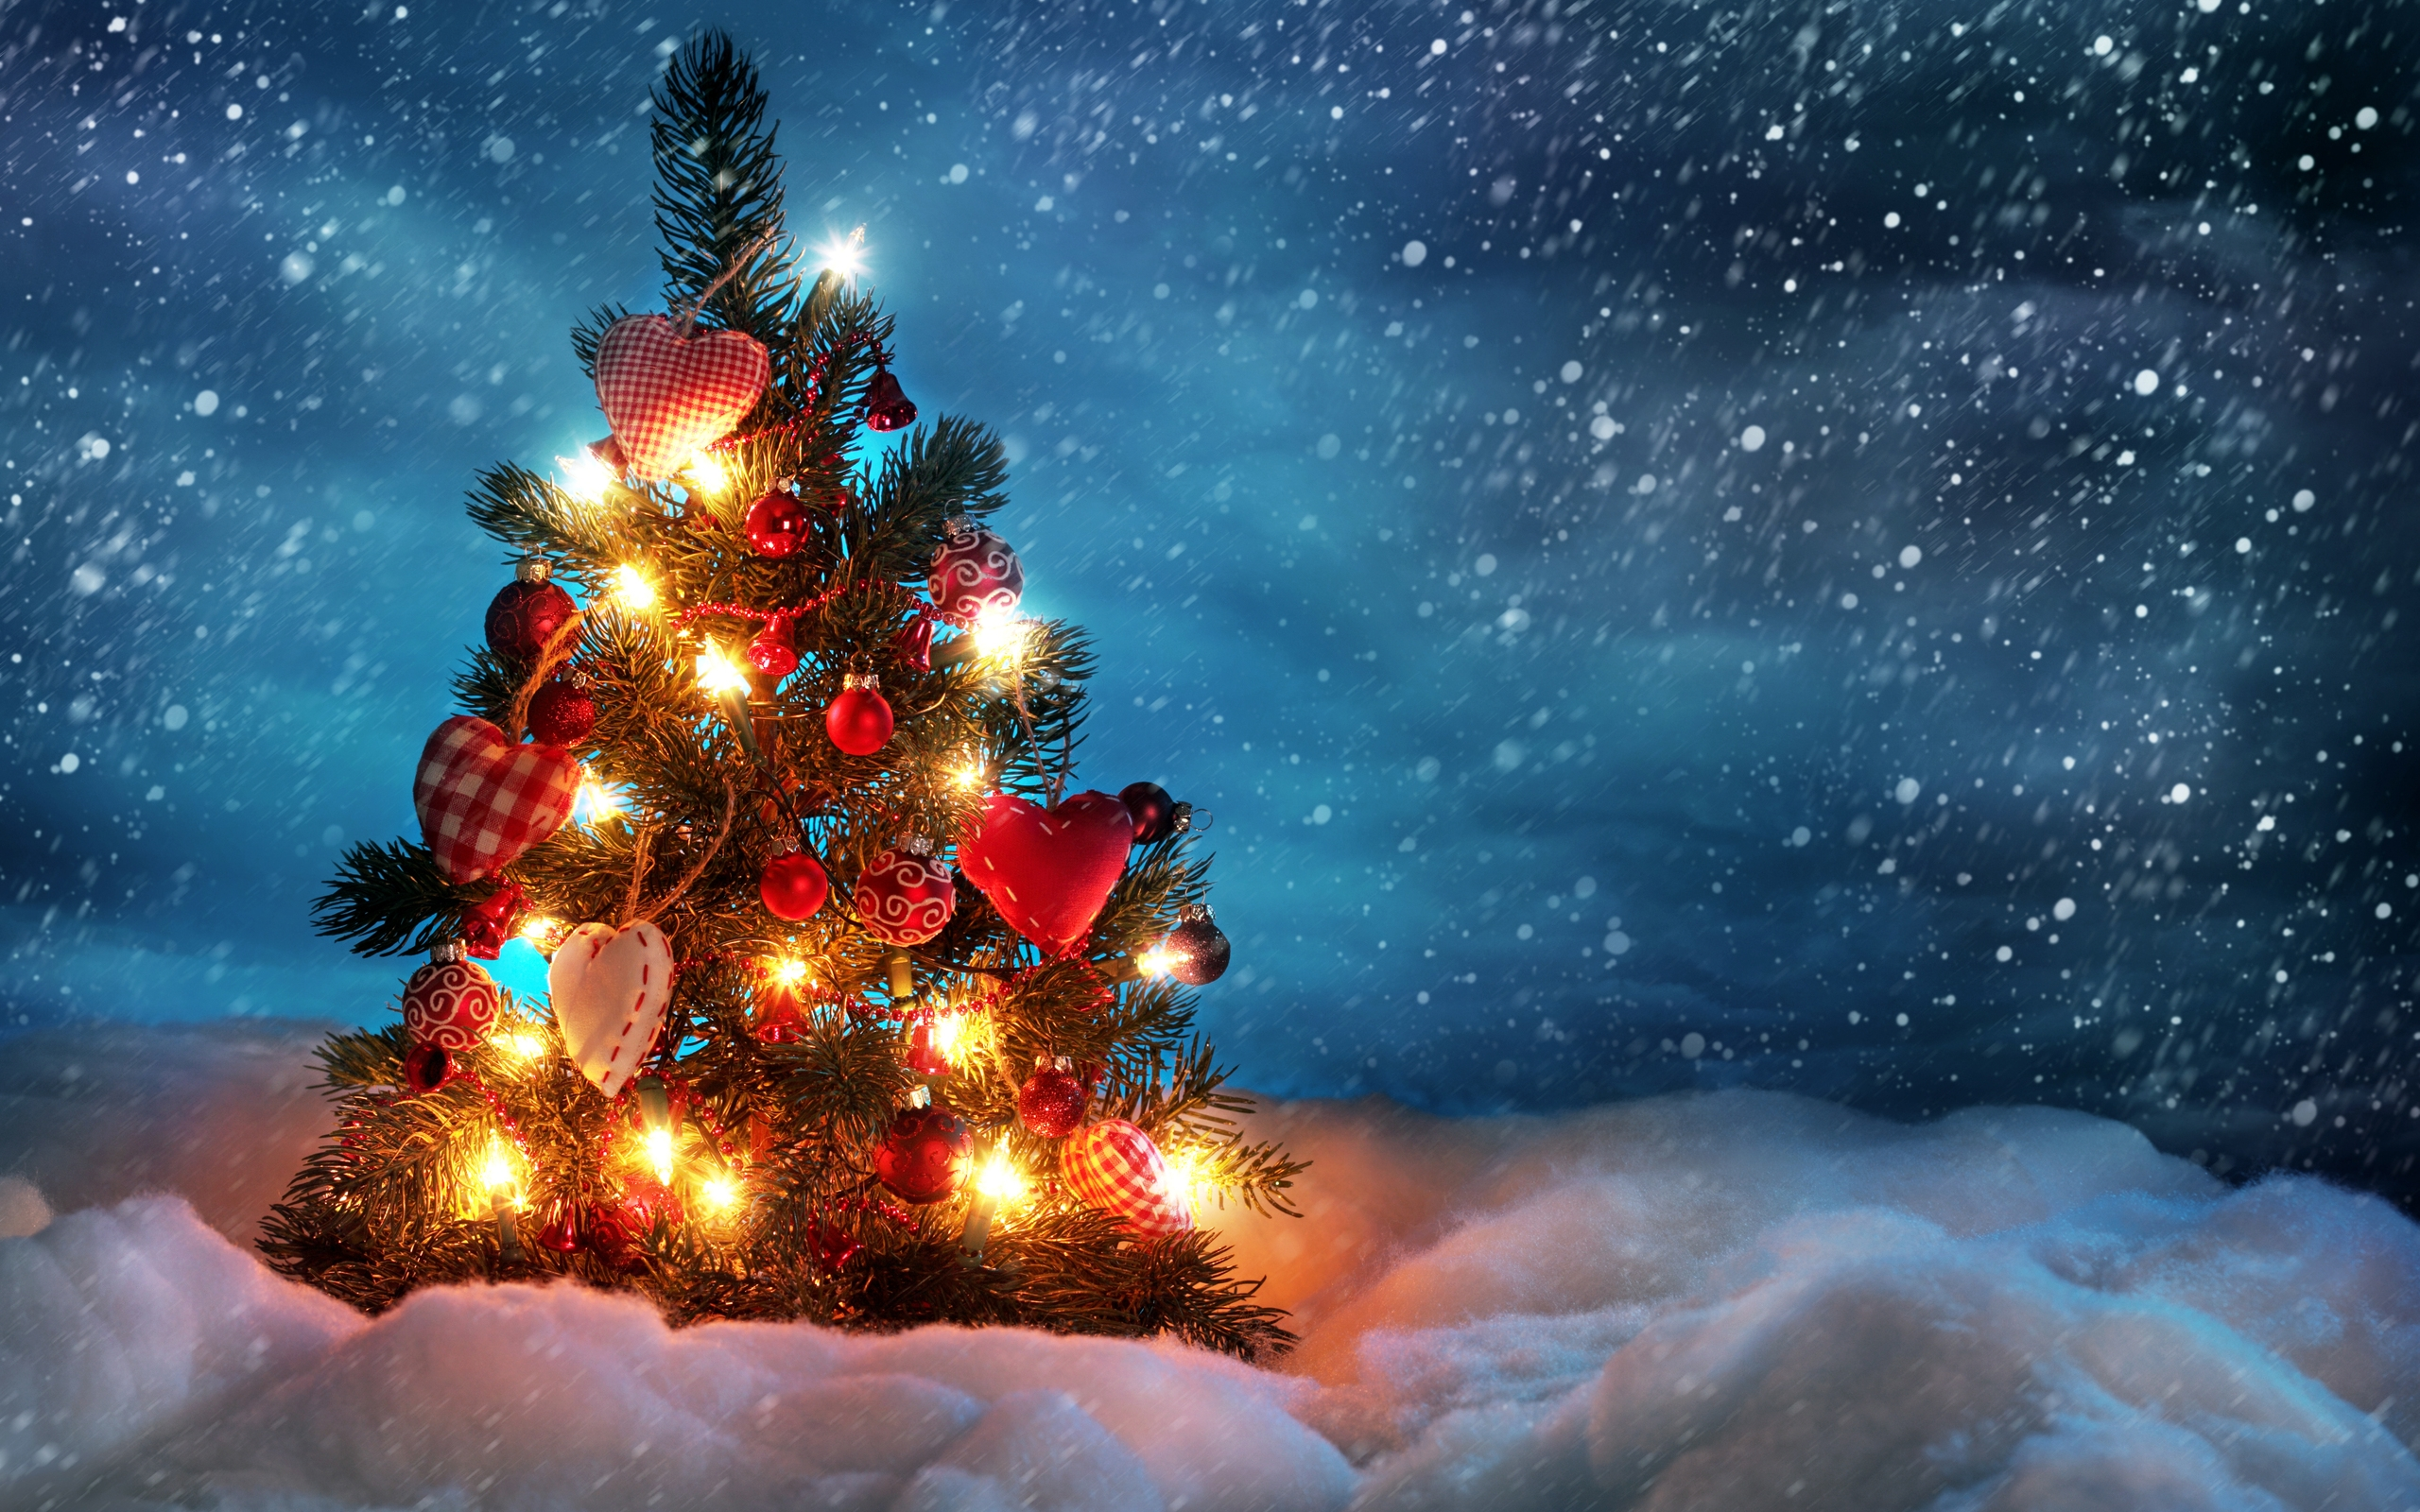 Beautiful Christmas Tree Wallpapers HD Wallpapers 2560x1600